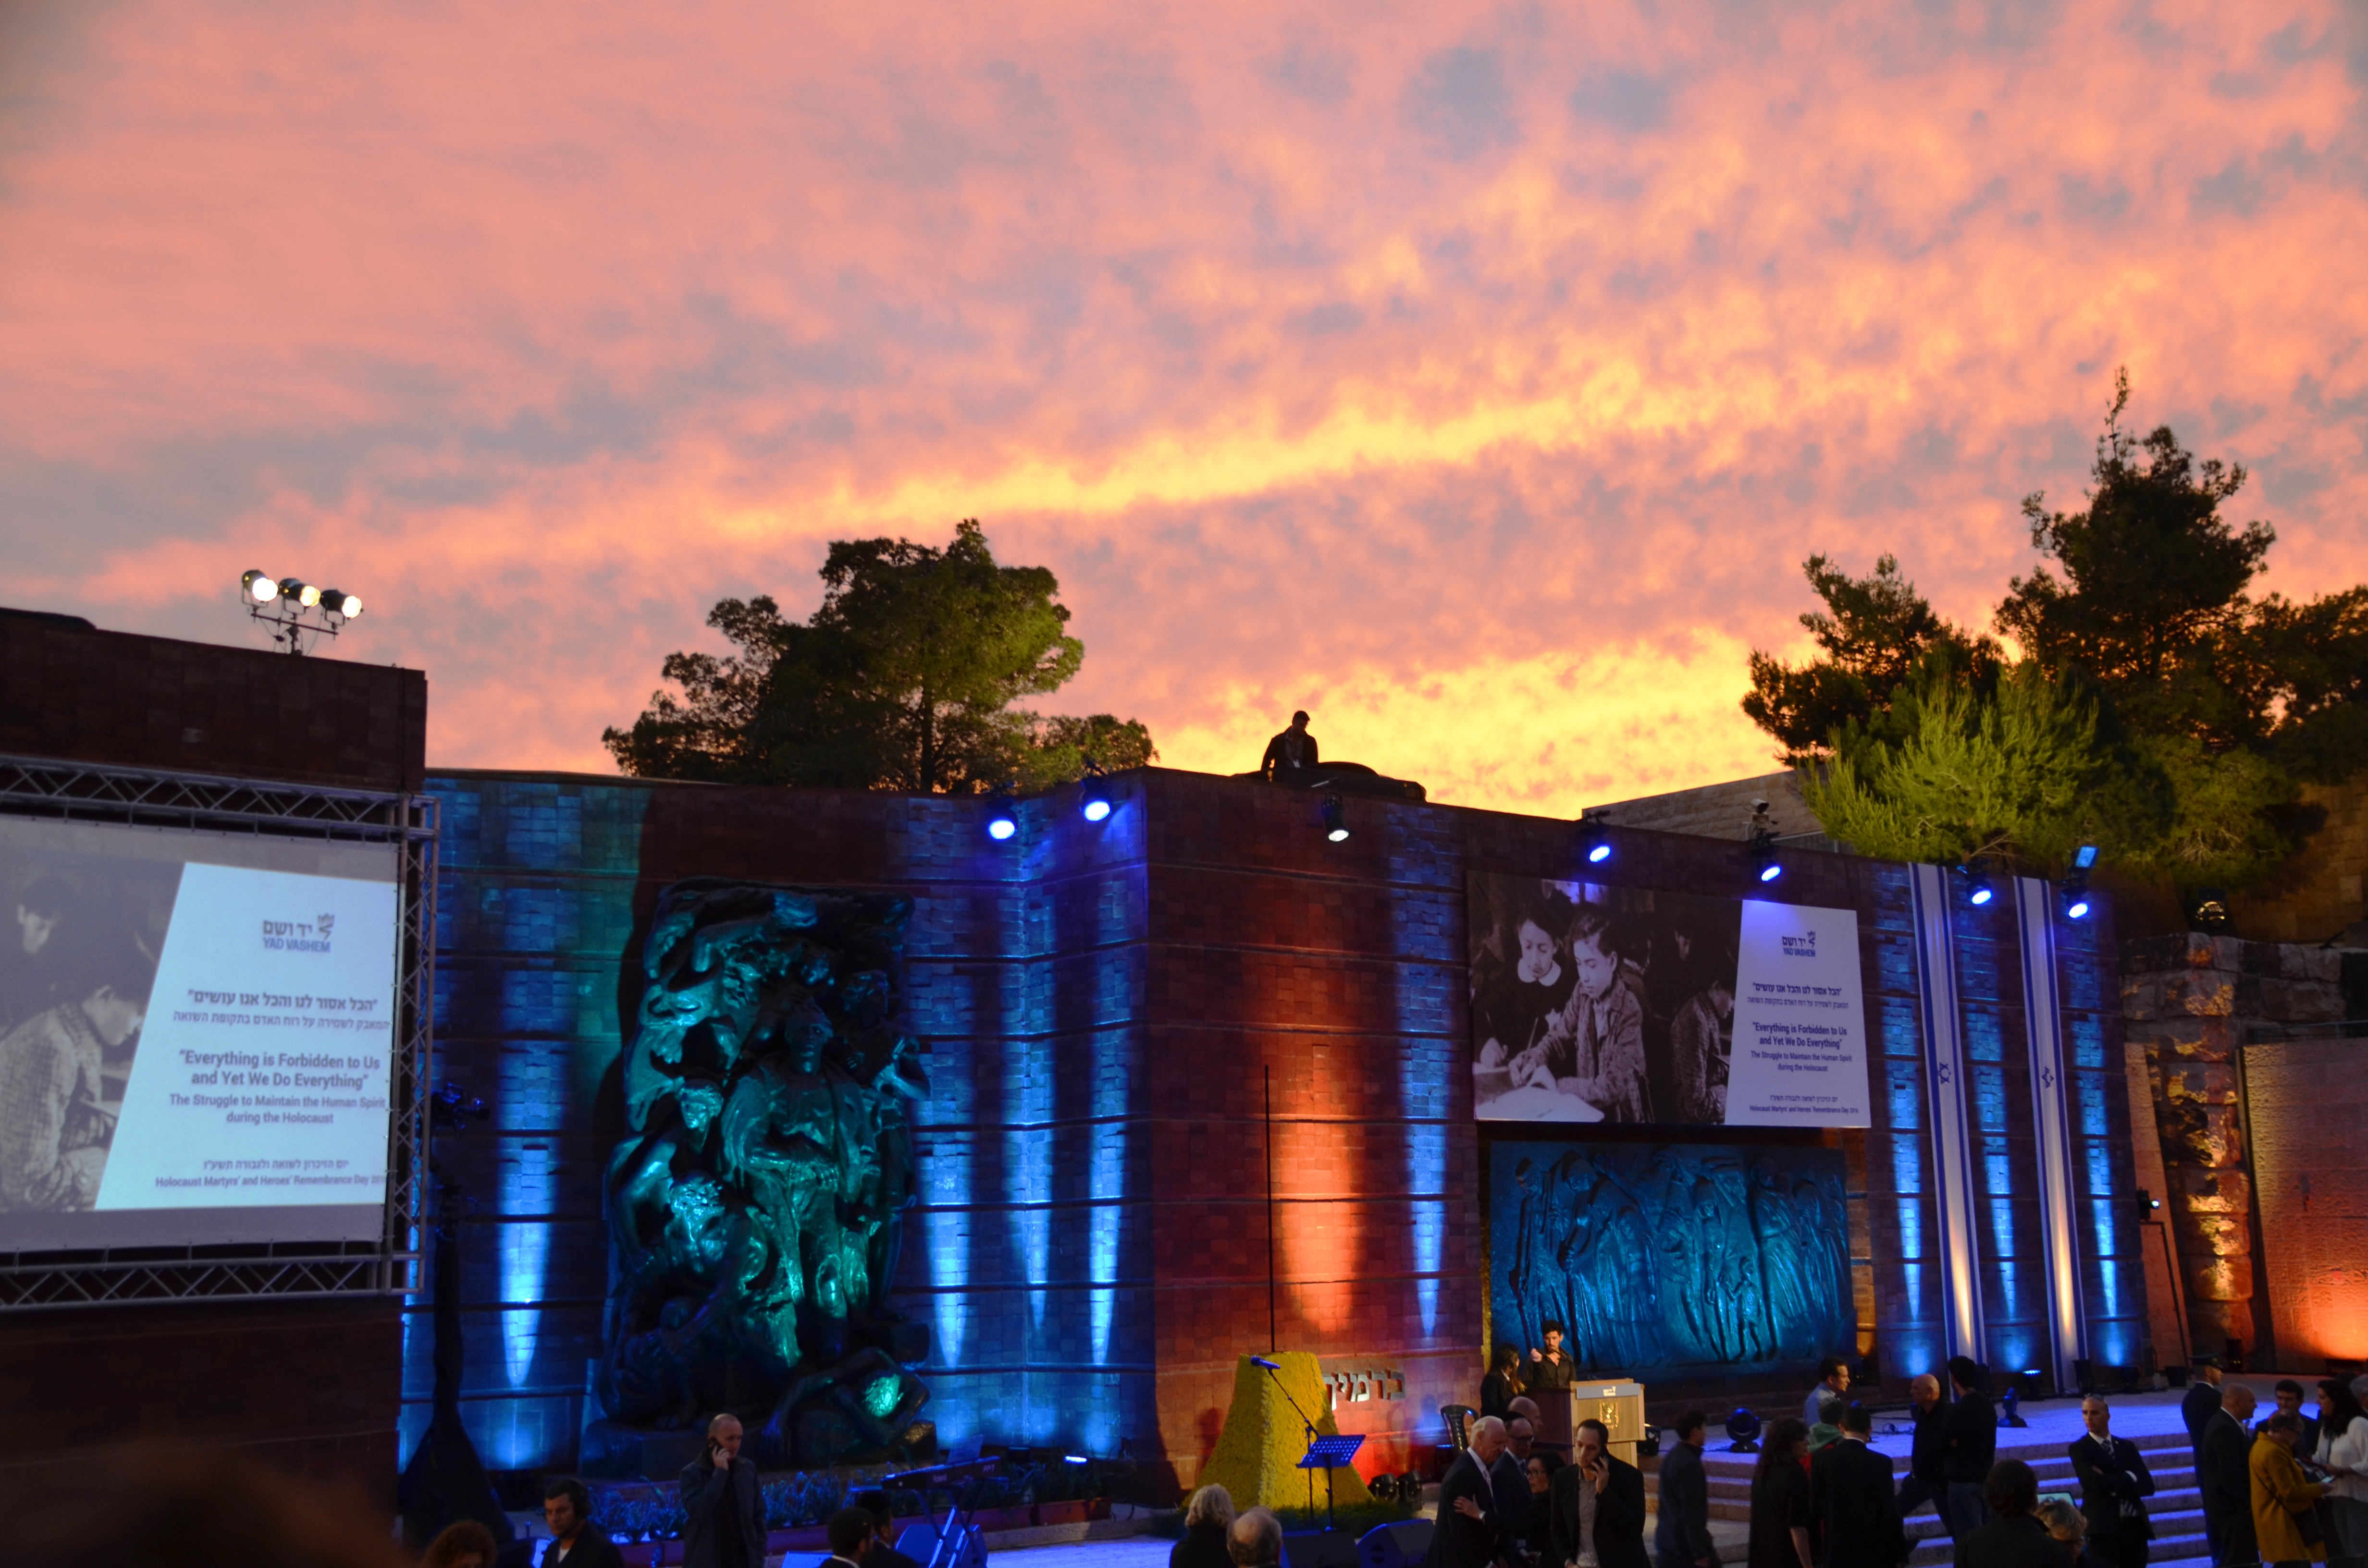 sunset sky at Yad Vashem for Holocaust memorial event